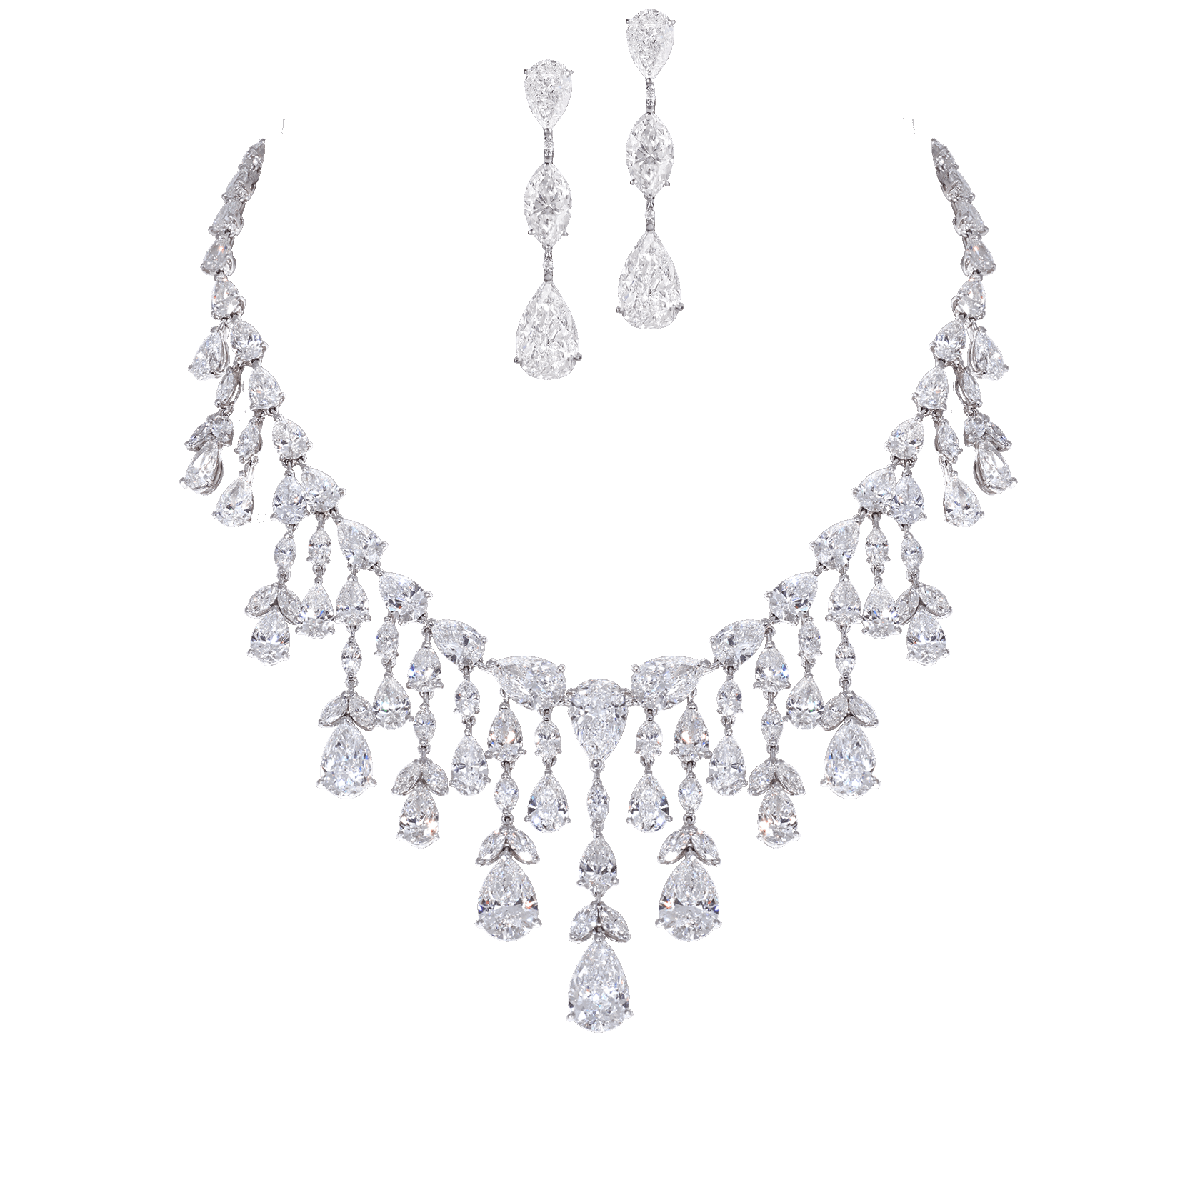 Diamond necklace png images. Free download